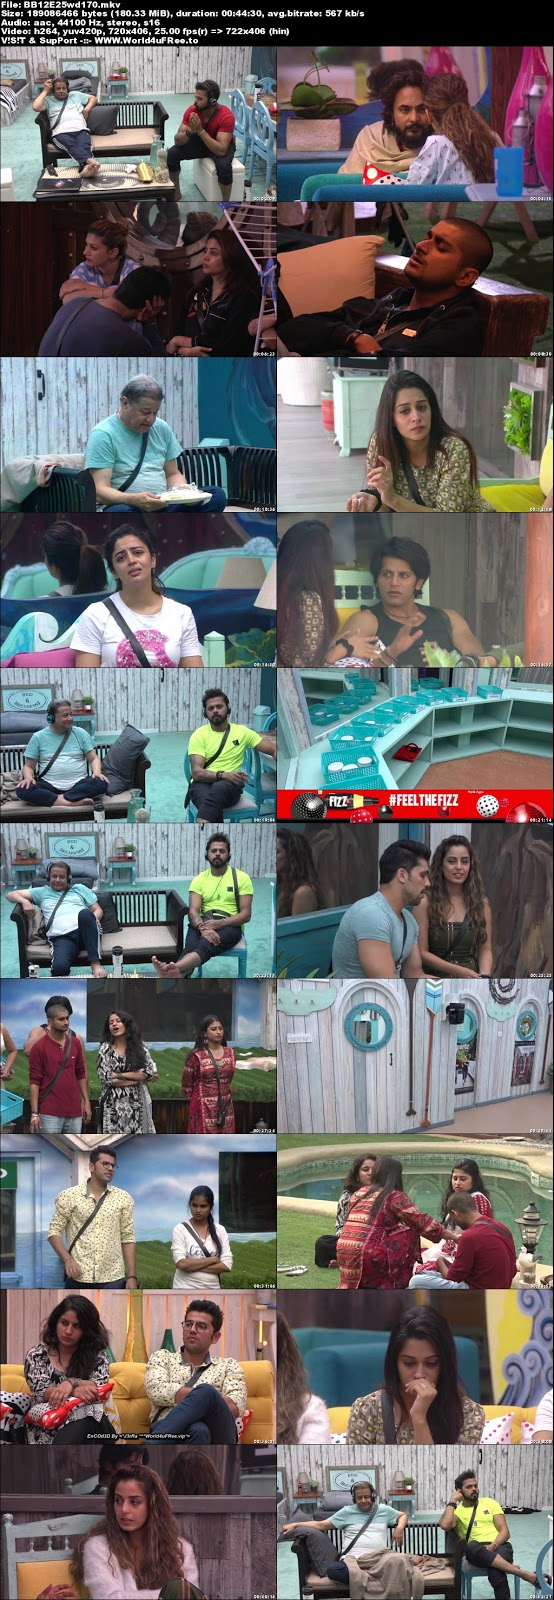 Bigg Boss 12 Episode 25 11 October 2018 WEBRip 480p Download world4ufree.vip tv show Episode 25 11 October 2018 world4ufree.vip 200mb 250mb 300mb compressed small size free download or watch online at world4ufree.vip